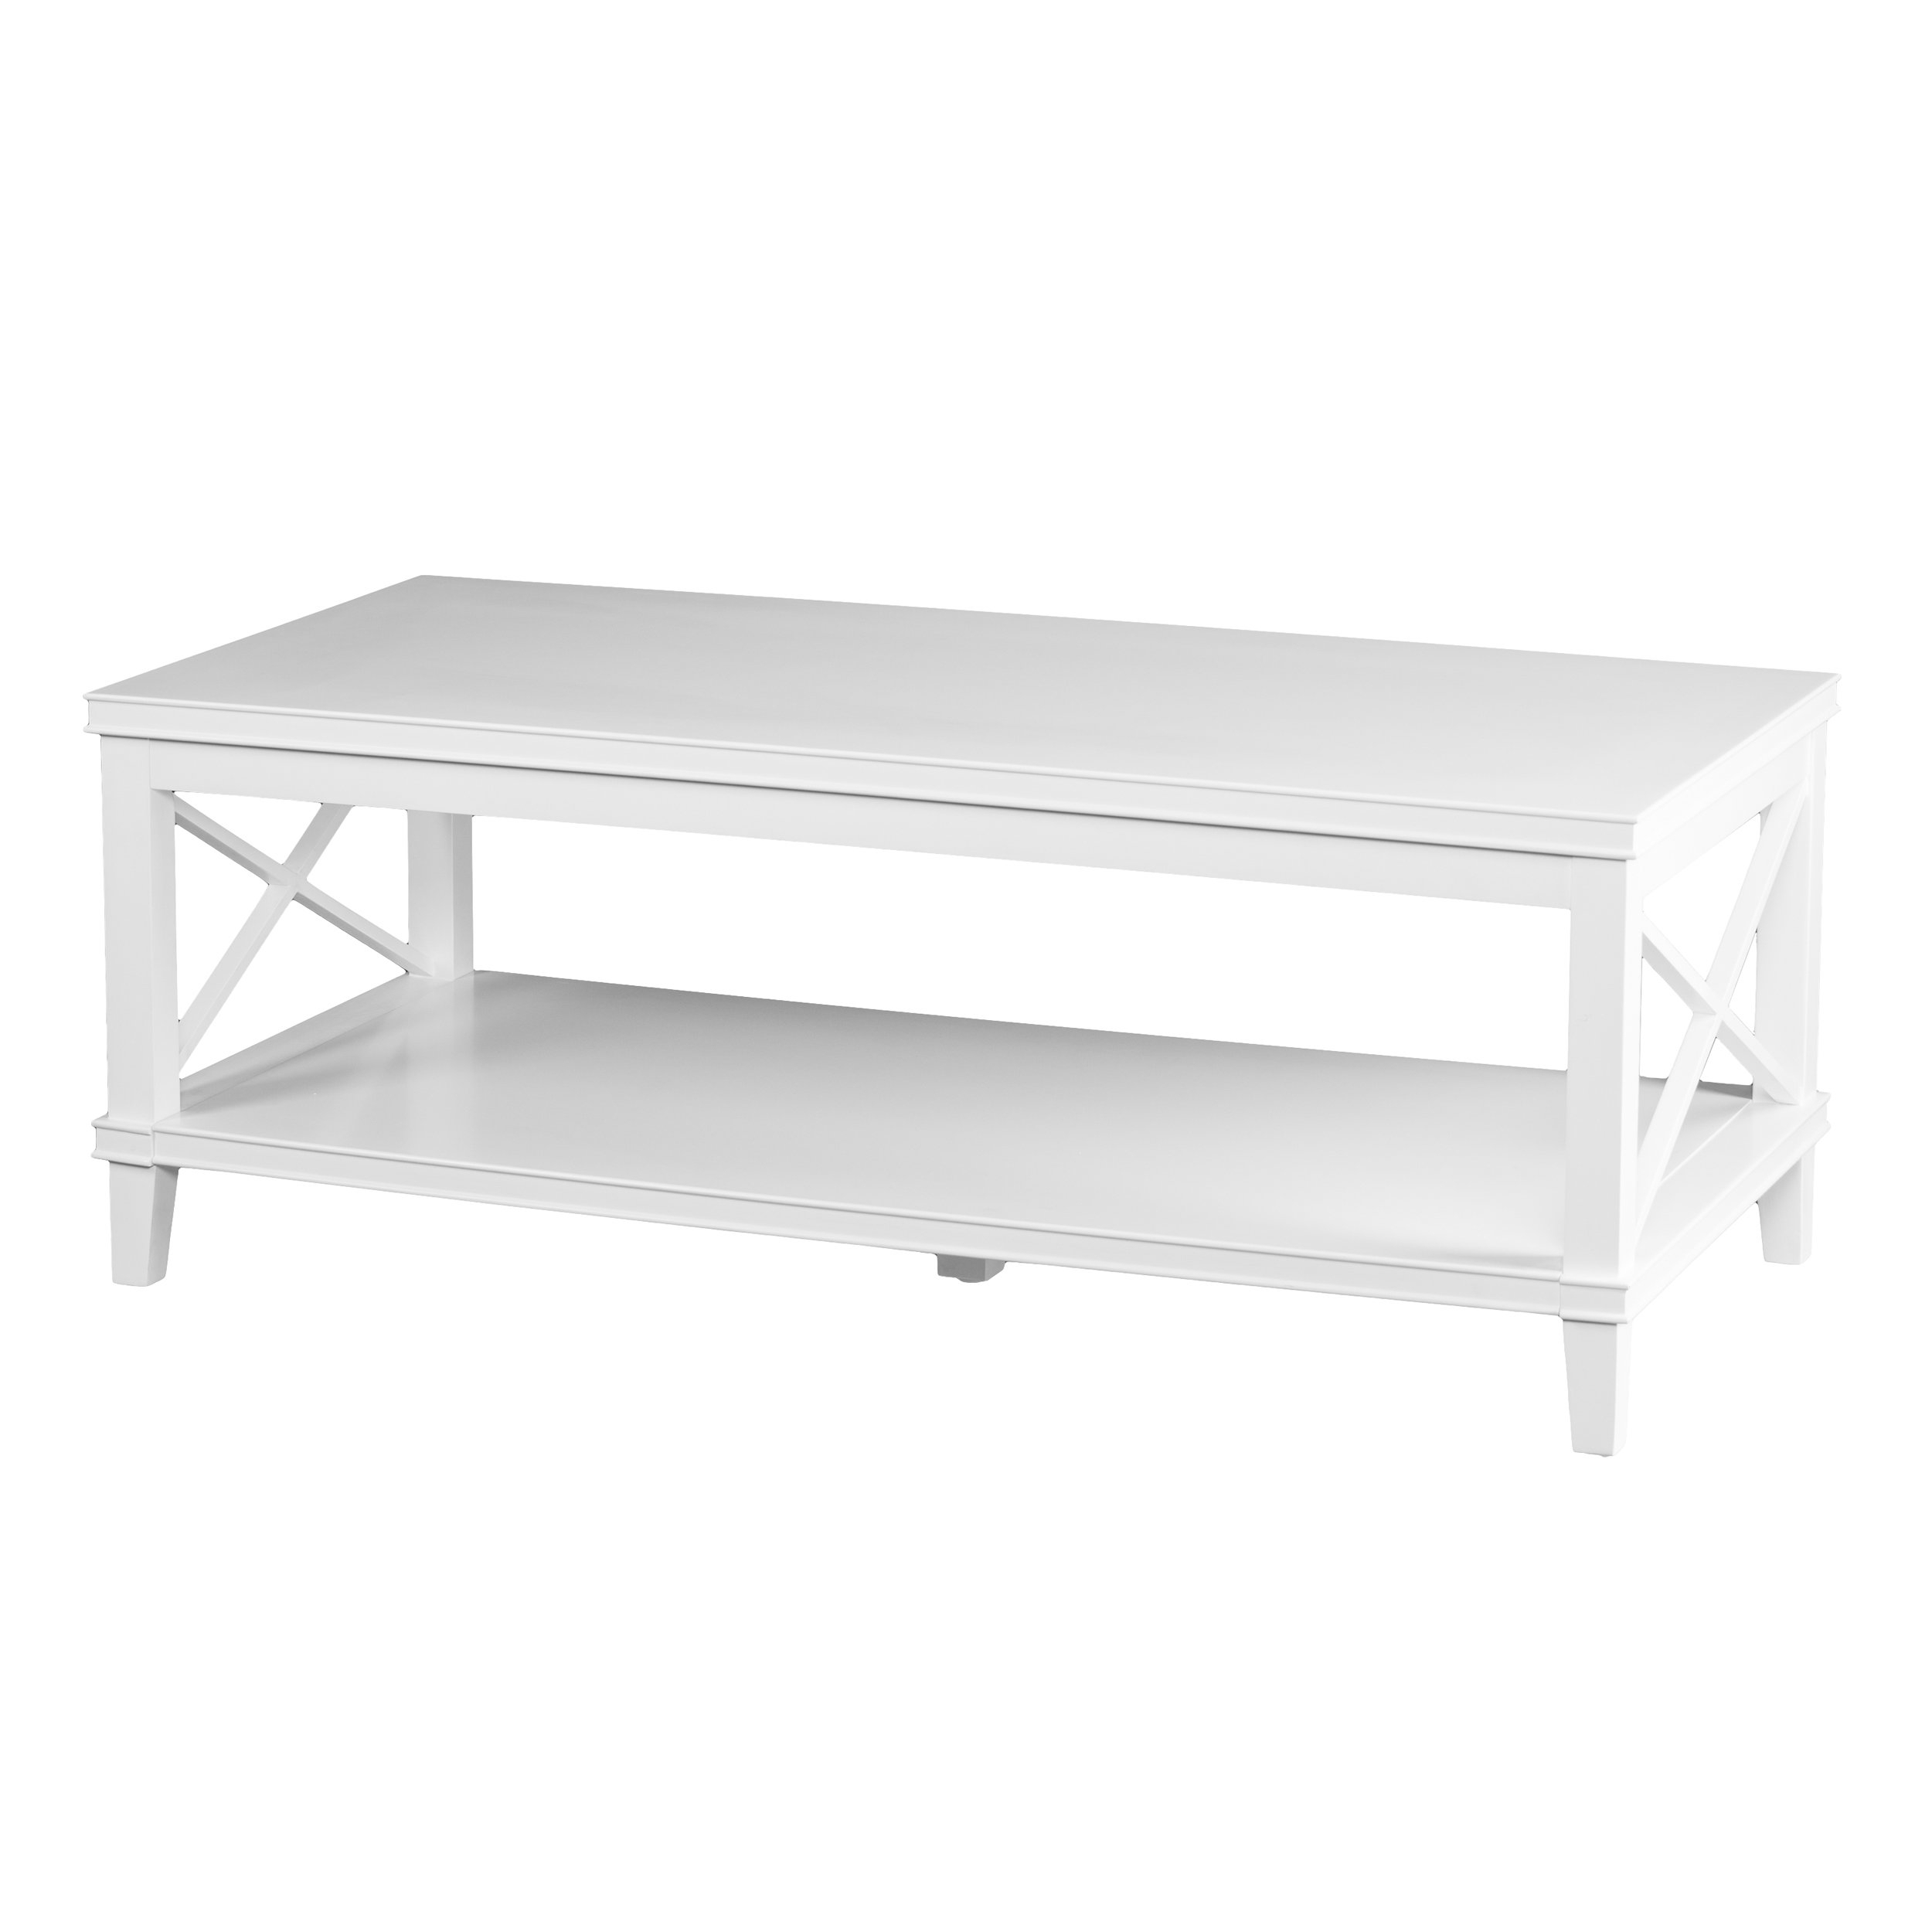 Birch Lane Larksmill Coffee Table & Reviews | Wayfair.co.uk regarding Mill Coffee Tables (Image 4 of 30)